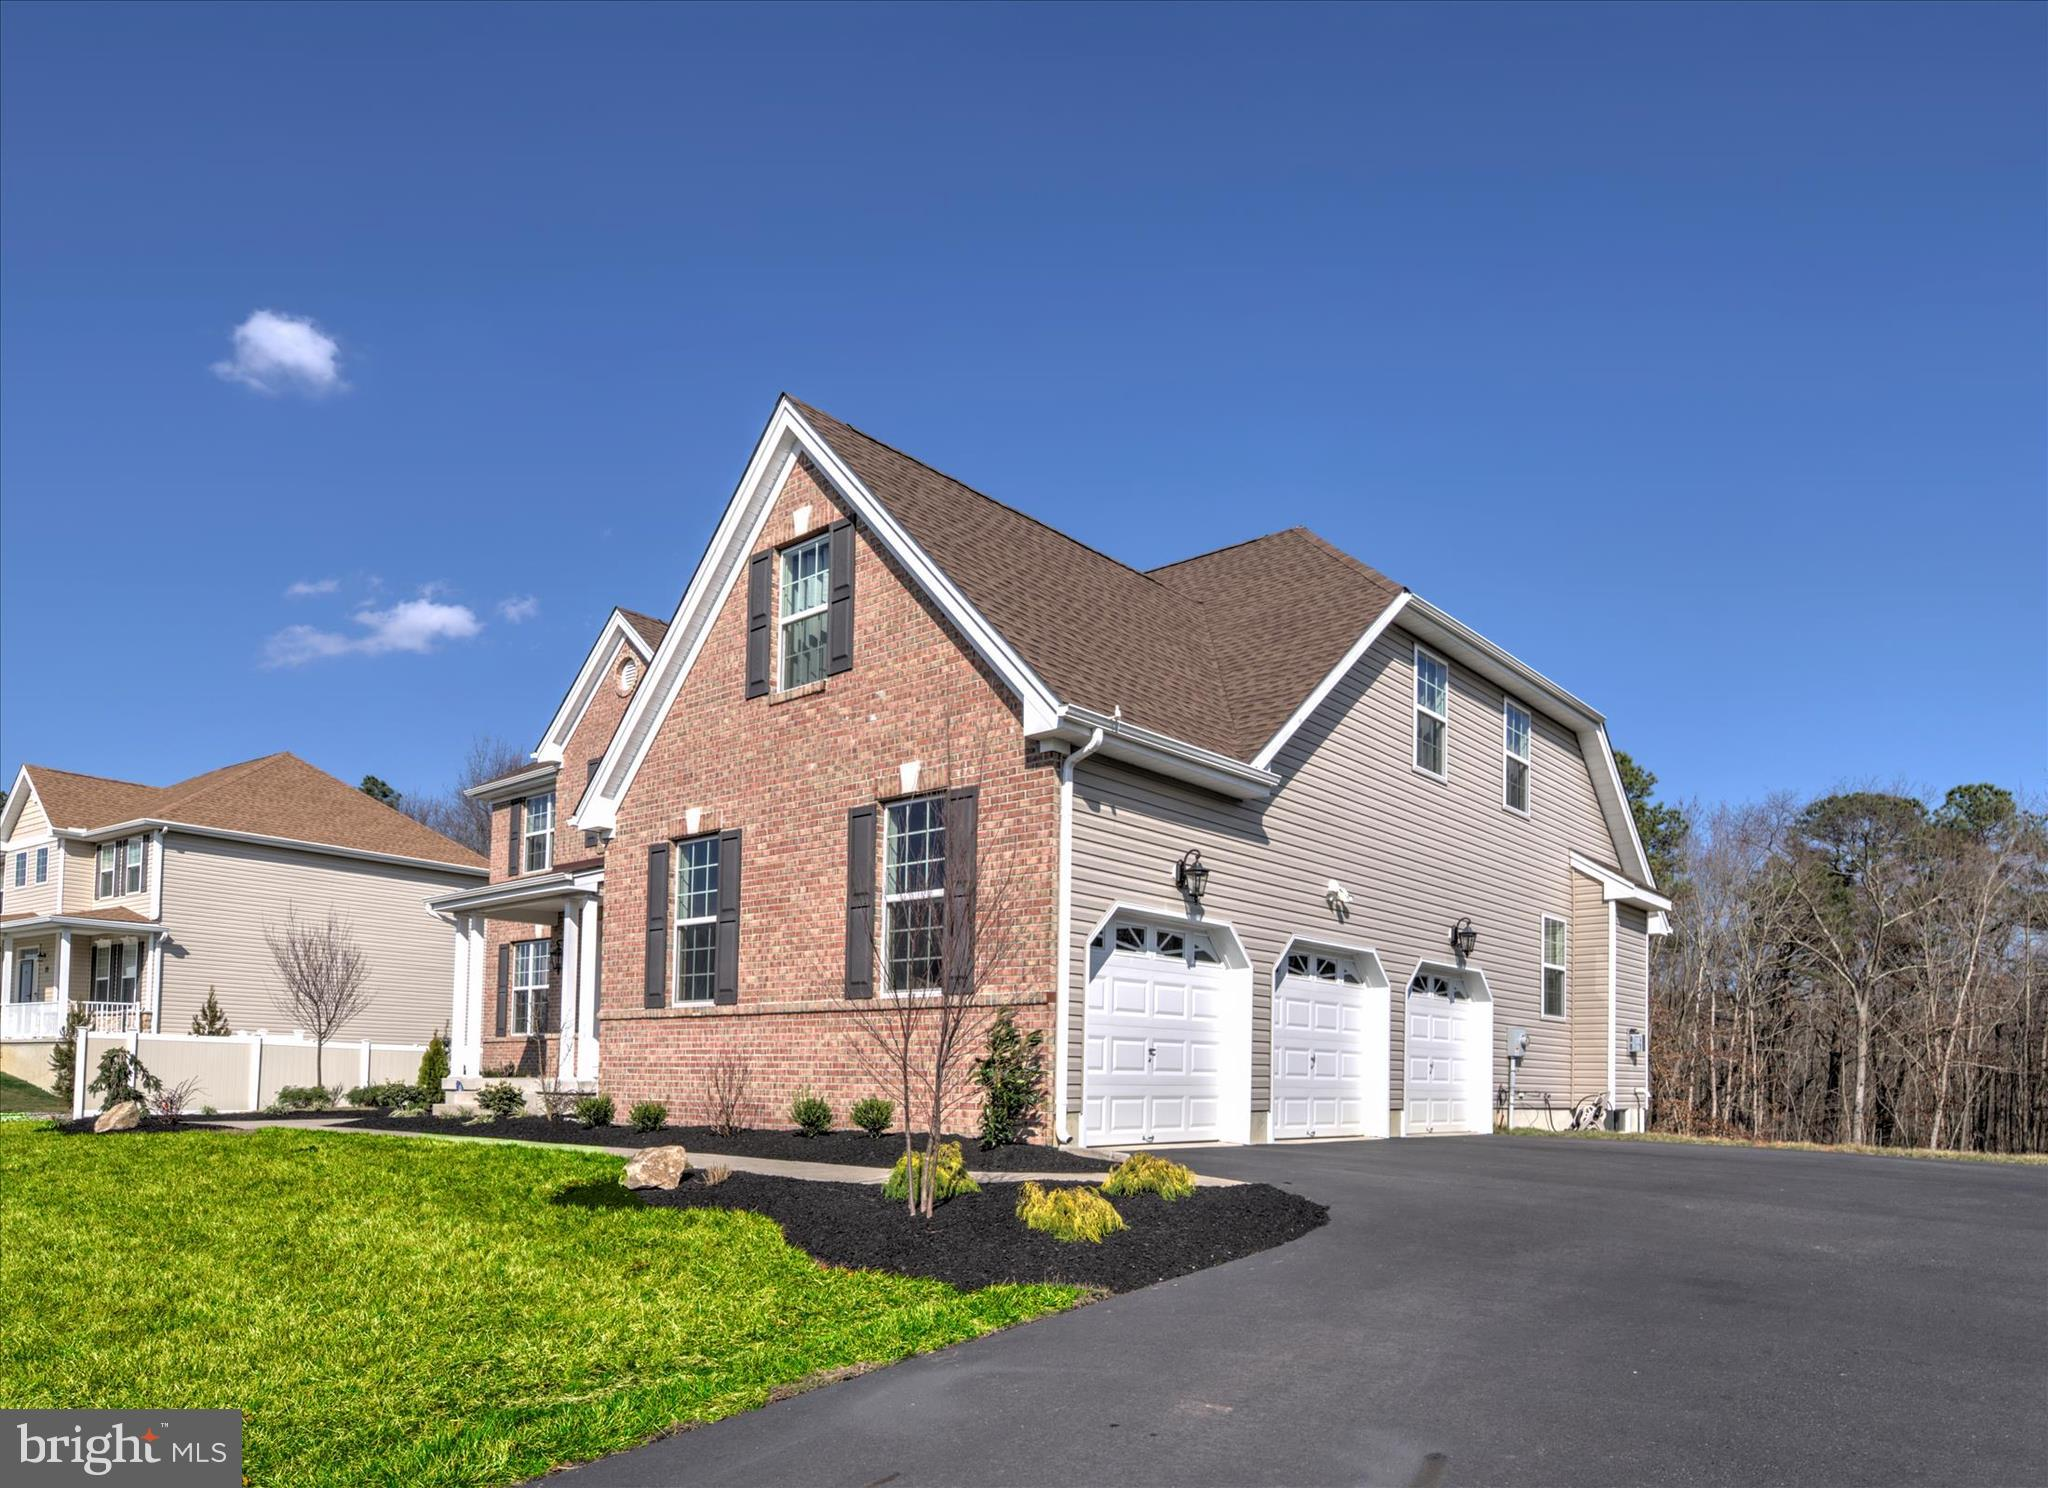 17 BELLAGIO ROAD, JACKSON, NJ 08527